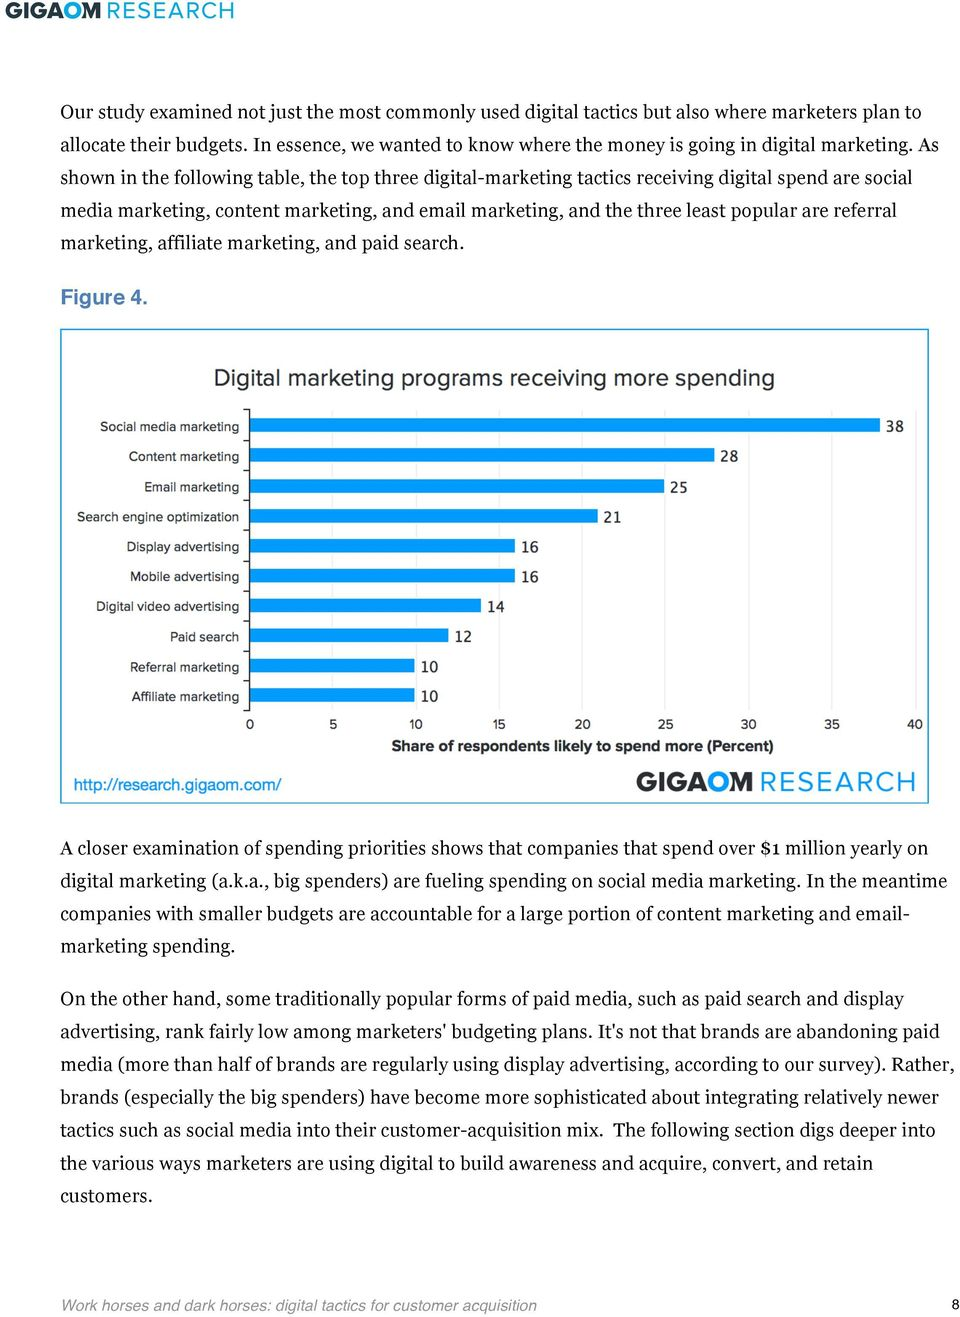 referral marketing, affiliate marketing, and paid search. Figure 4. A closer examination of spending priorities shows that companies that spend over $1 million yearly on digital marketing (a.k.a., big spenders) are fueling spending on social media marketing.